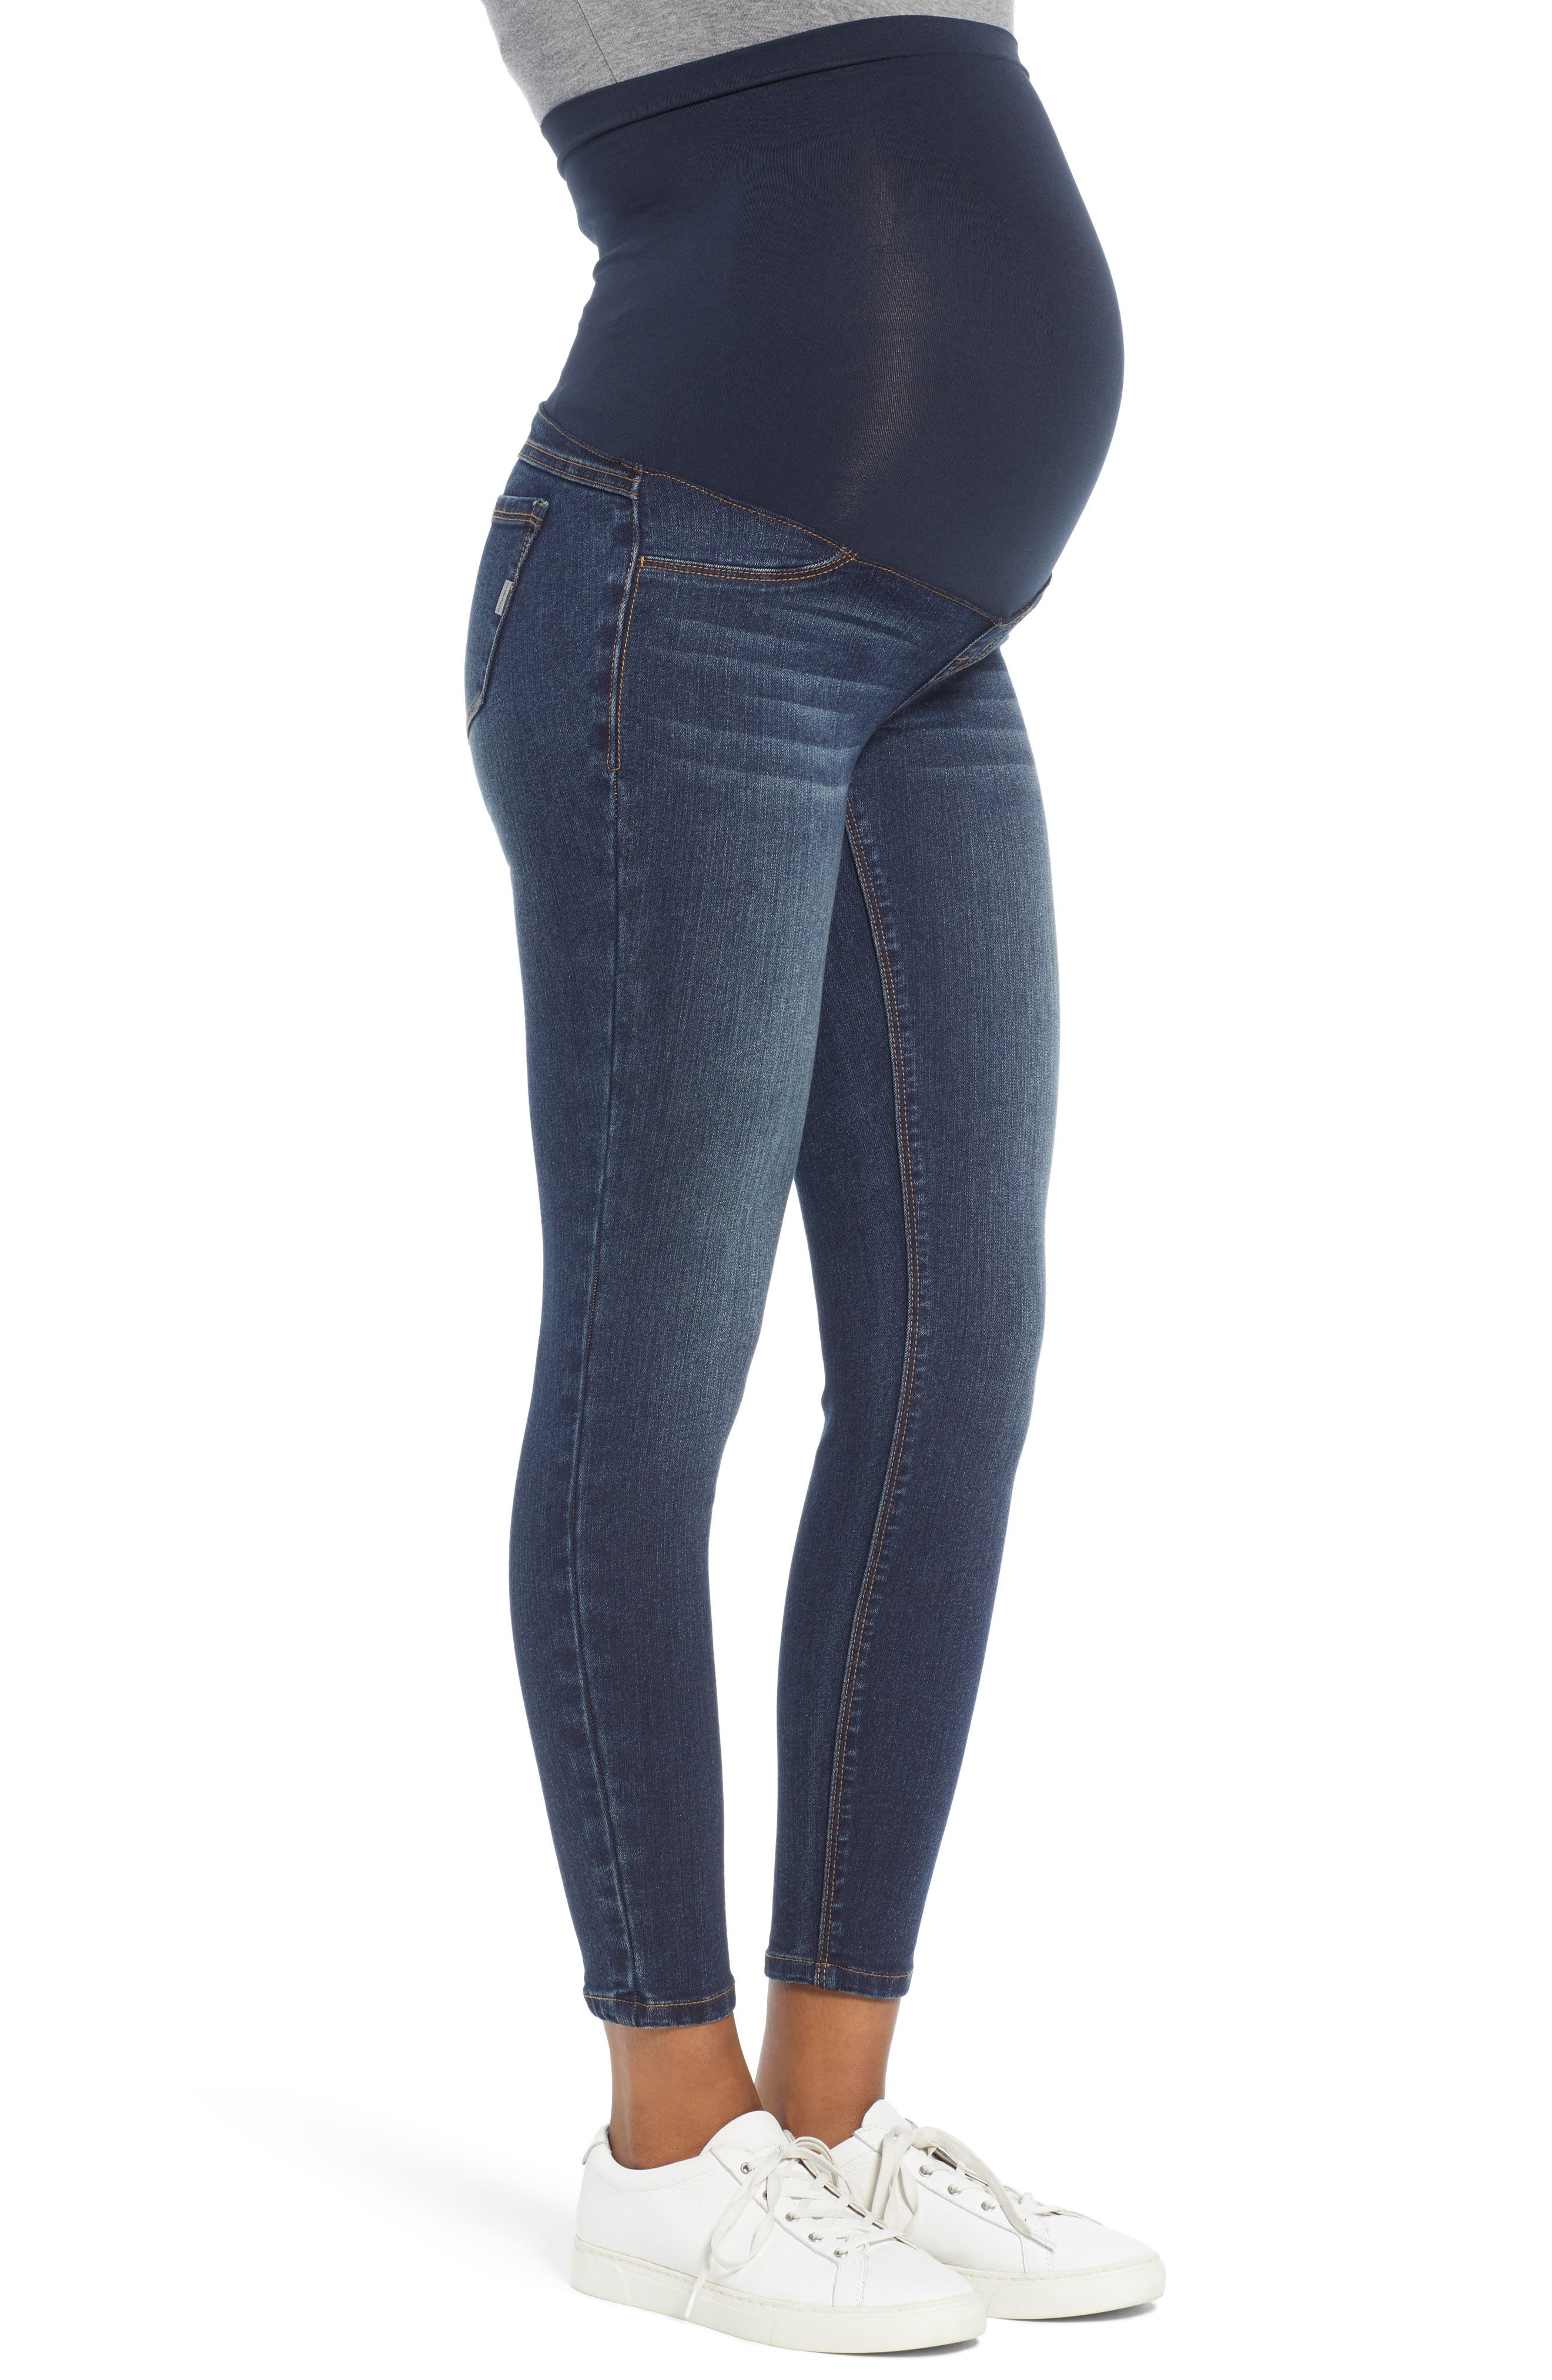 Ankle Skinny Maternity Jeans,                             Alternate thumbnail 3, color,                             406